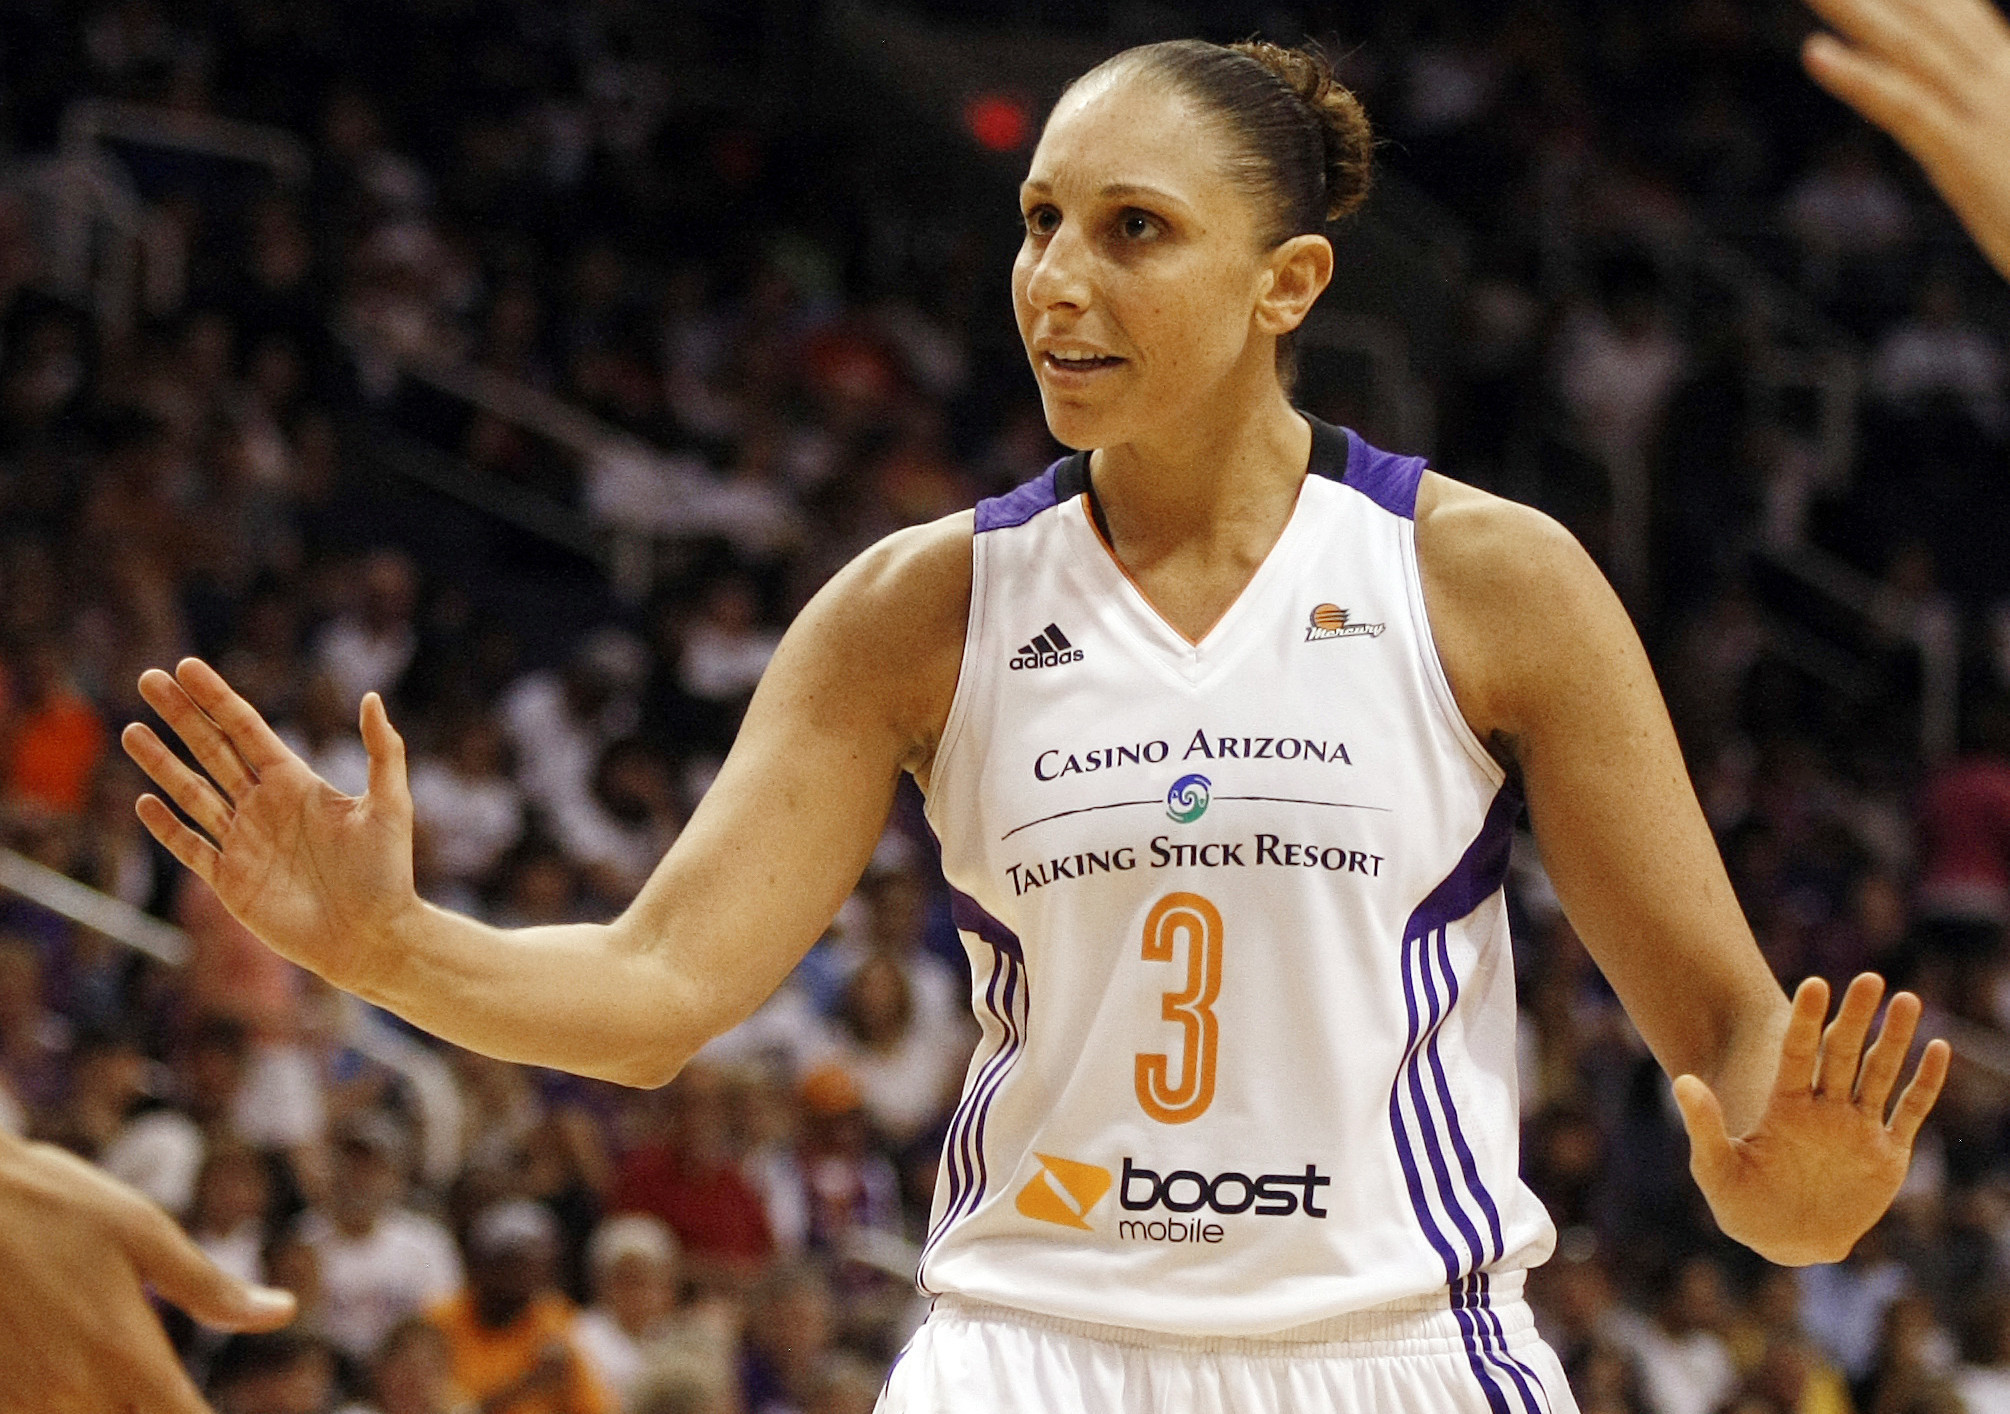 Taurasi Being Paid Not To Play - Hartford Courant